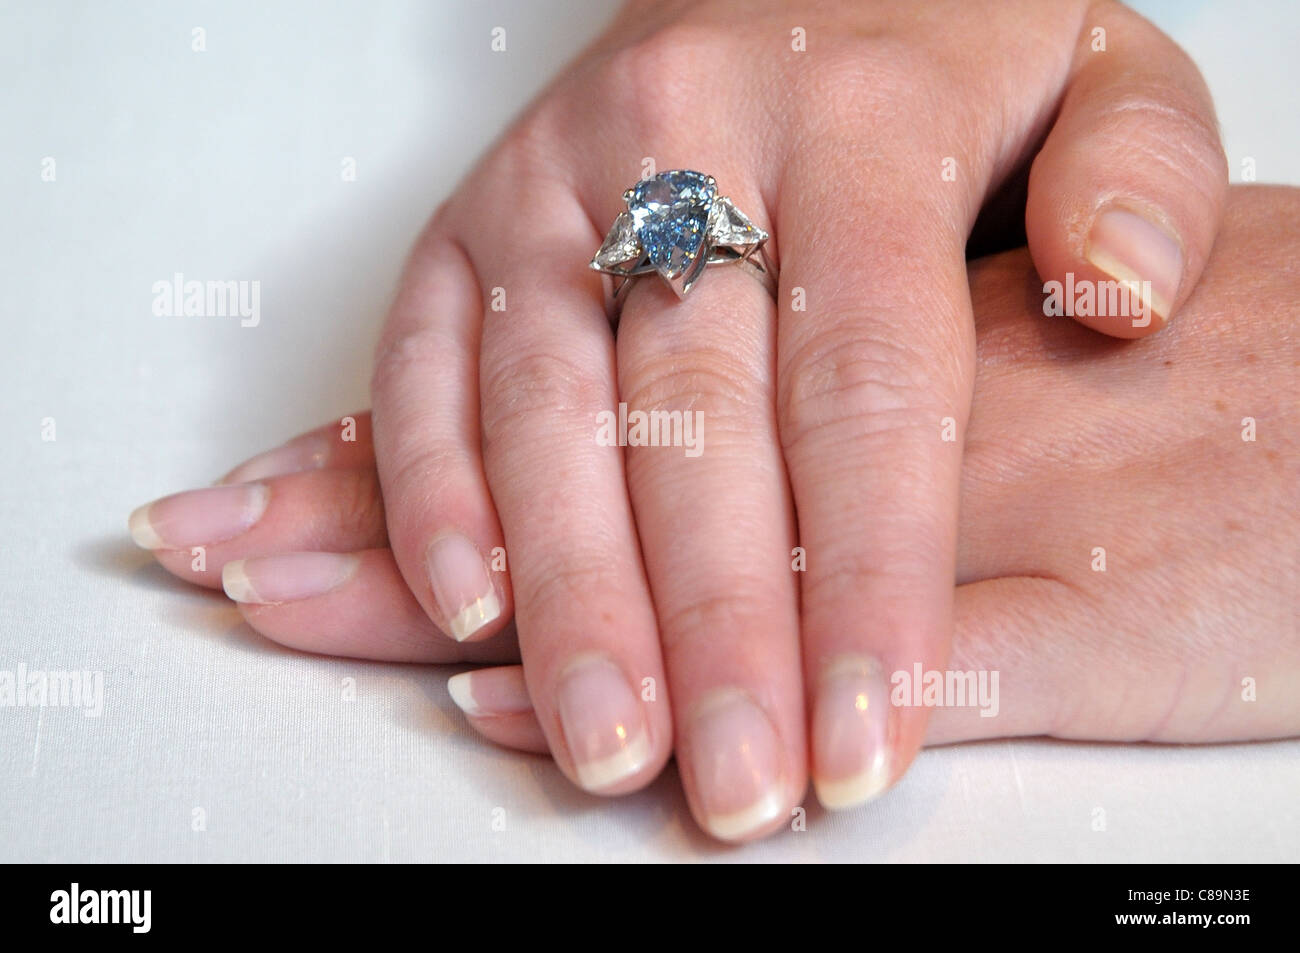 Old Couple Family Ring Stock Photos & Old Couple Family Ring Stock ...